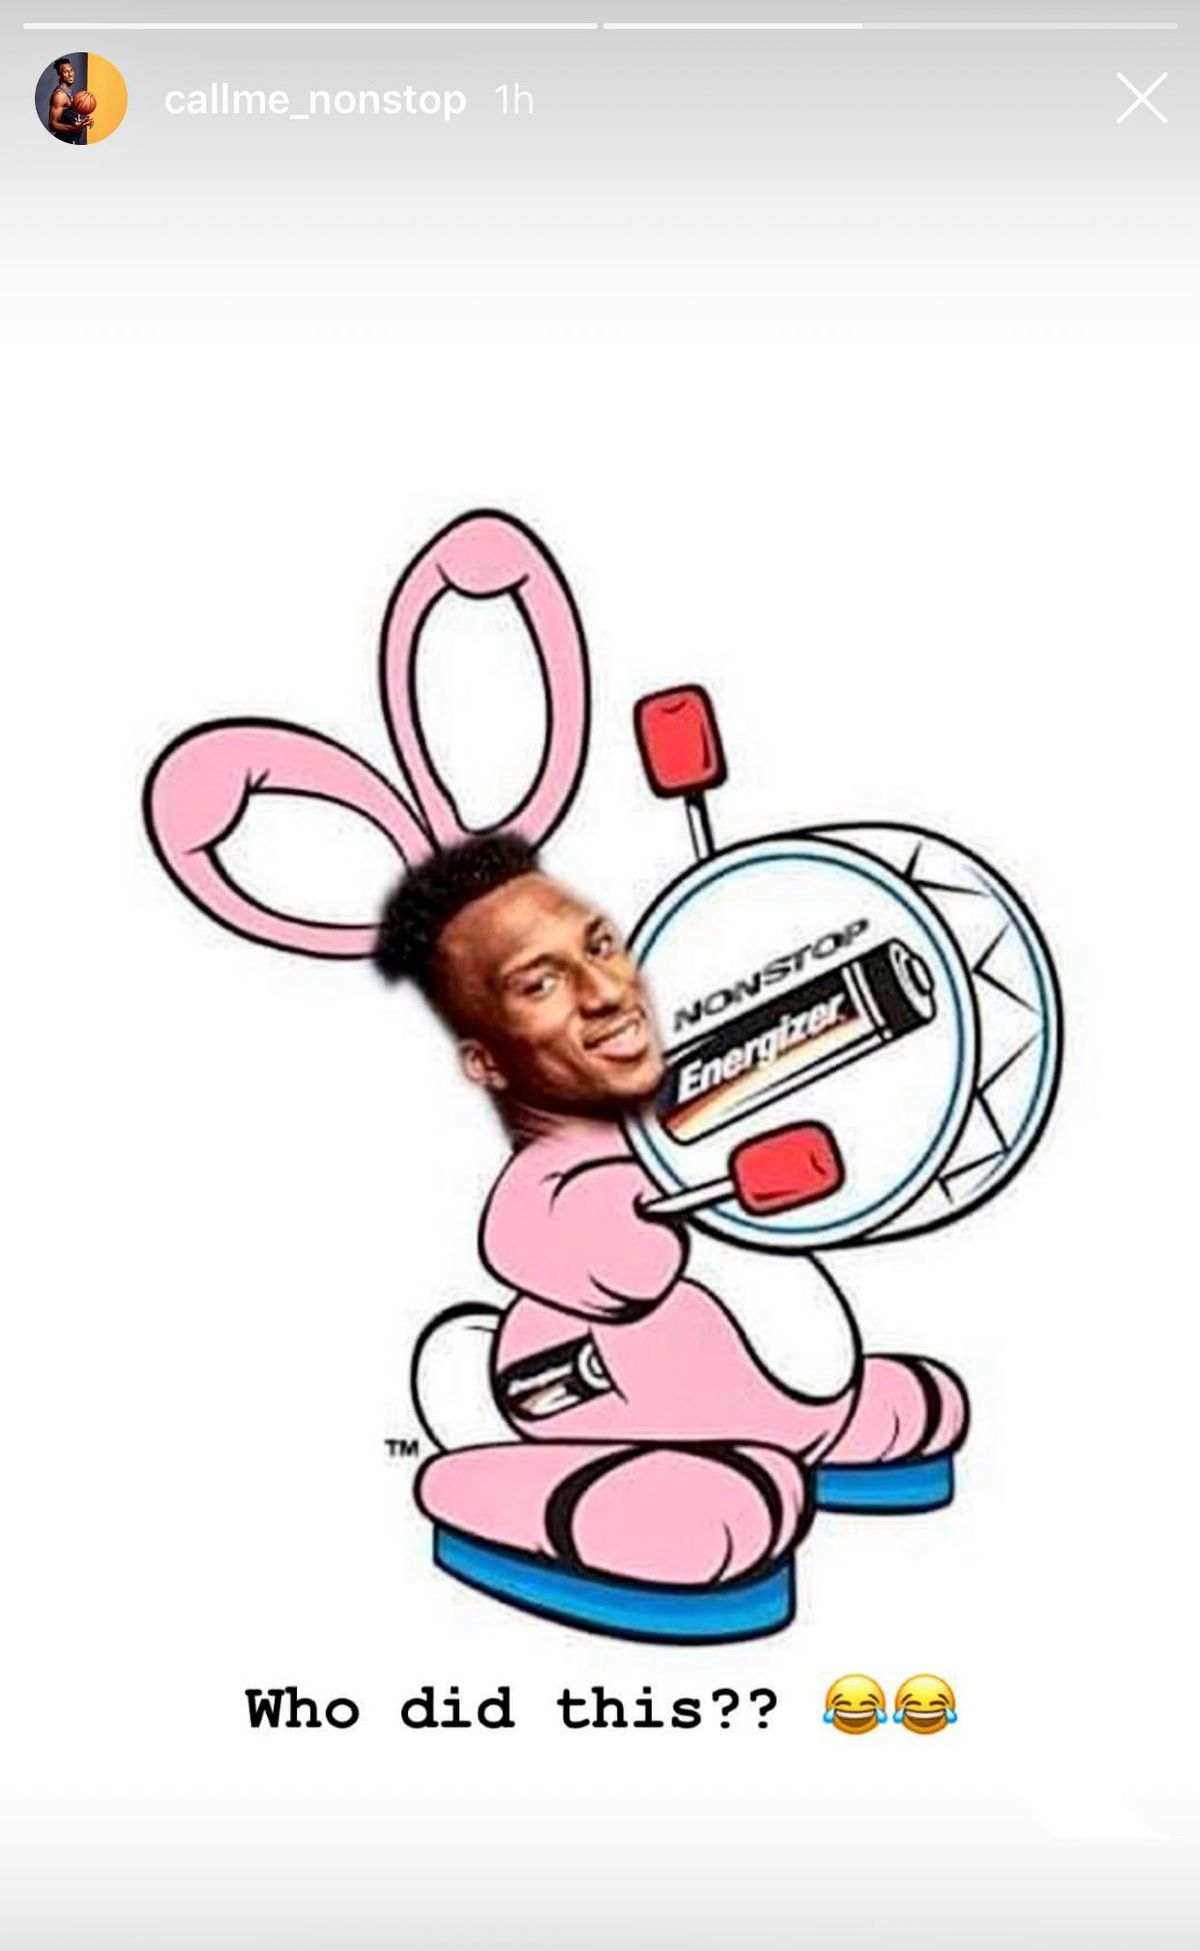 """Josh Okogie's face photoshopped onto the energizer bunny. He's taken a screenshot of this photo and captioned it """"Who Did This?"""" followed by two crying/laughing face emojis"""